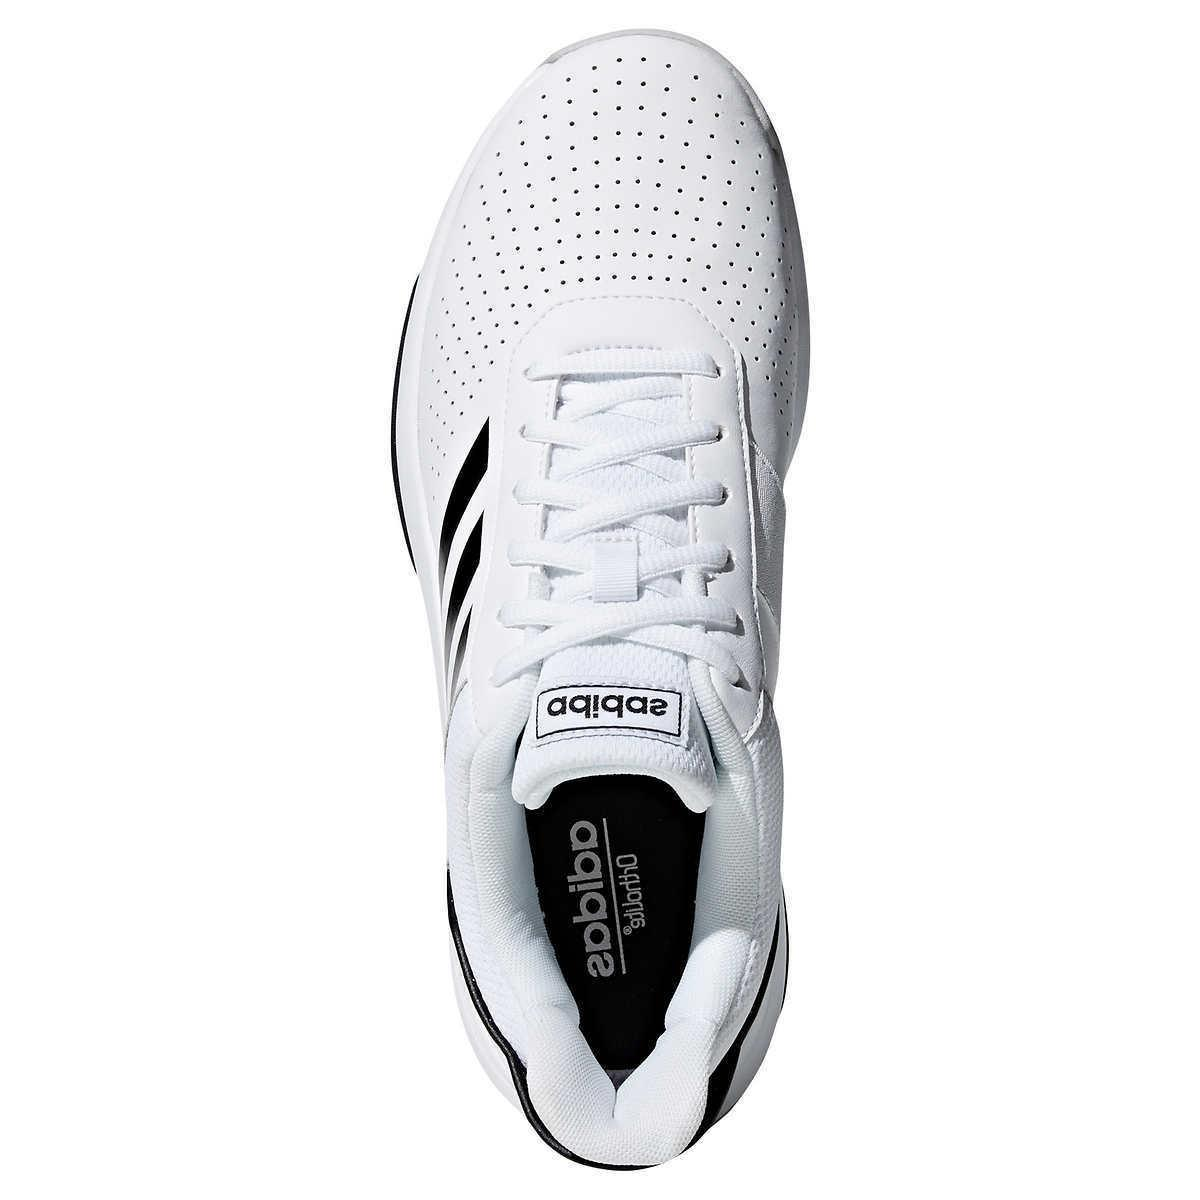 Adidas Black White - Size and Color